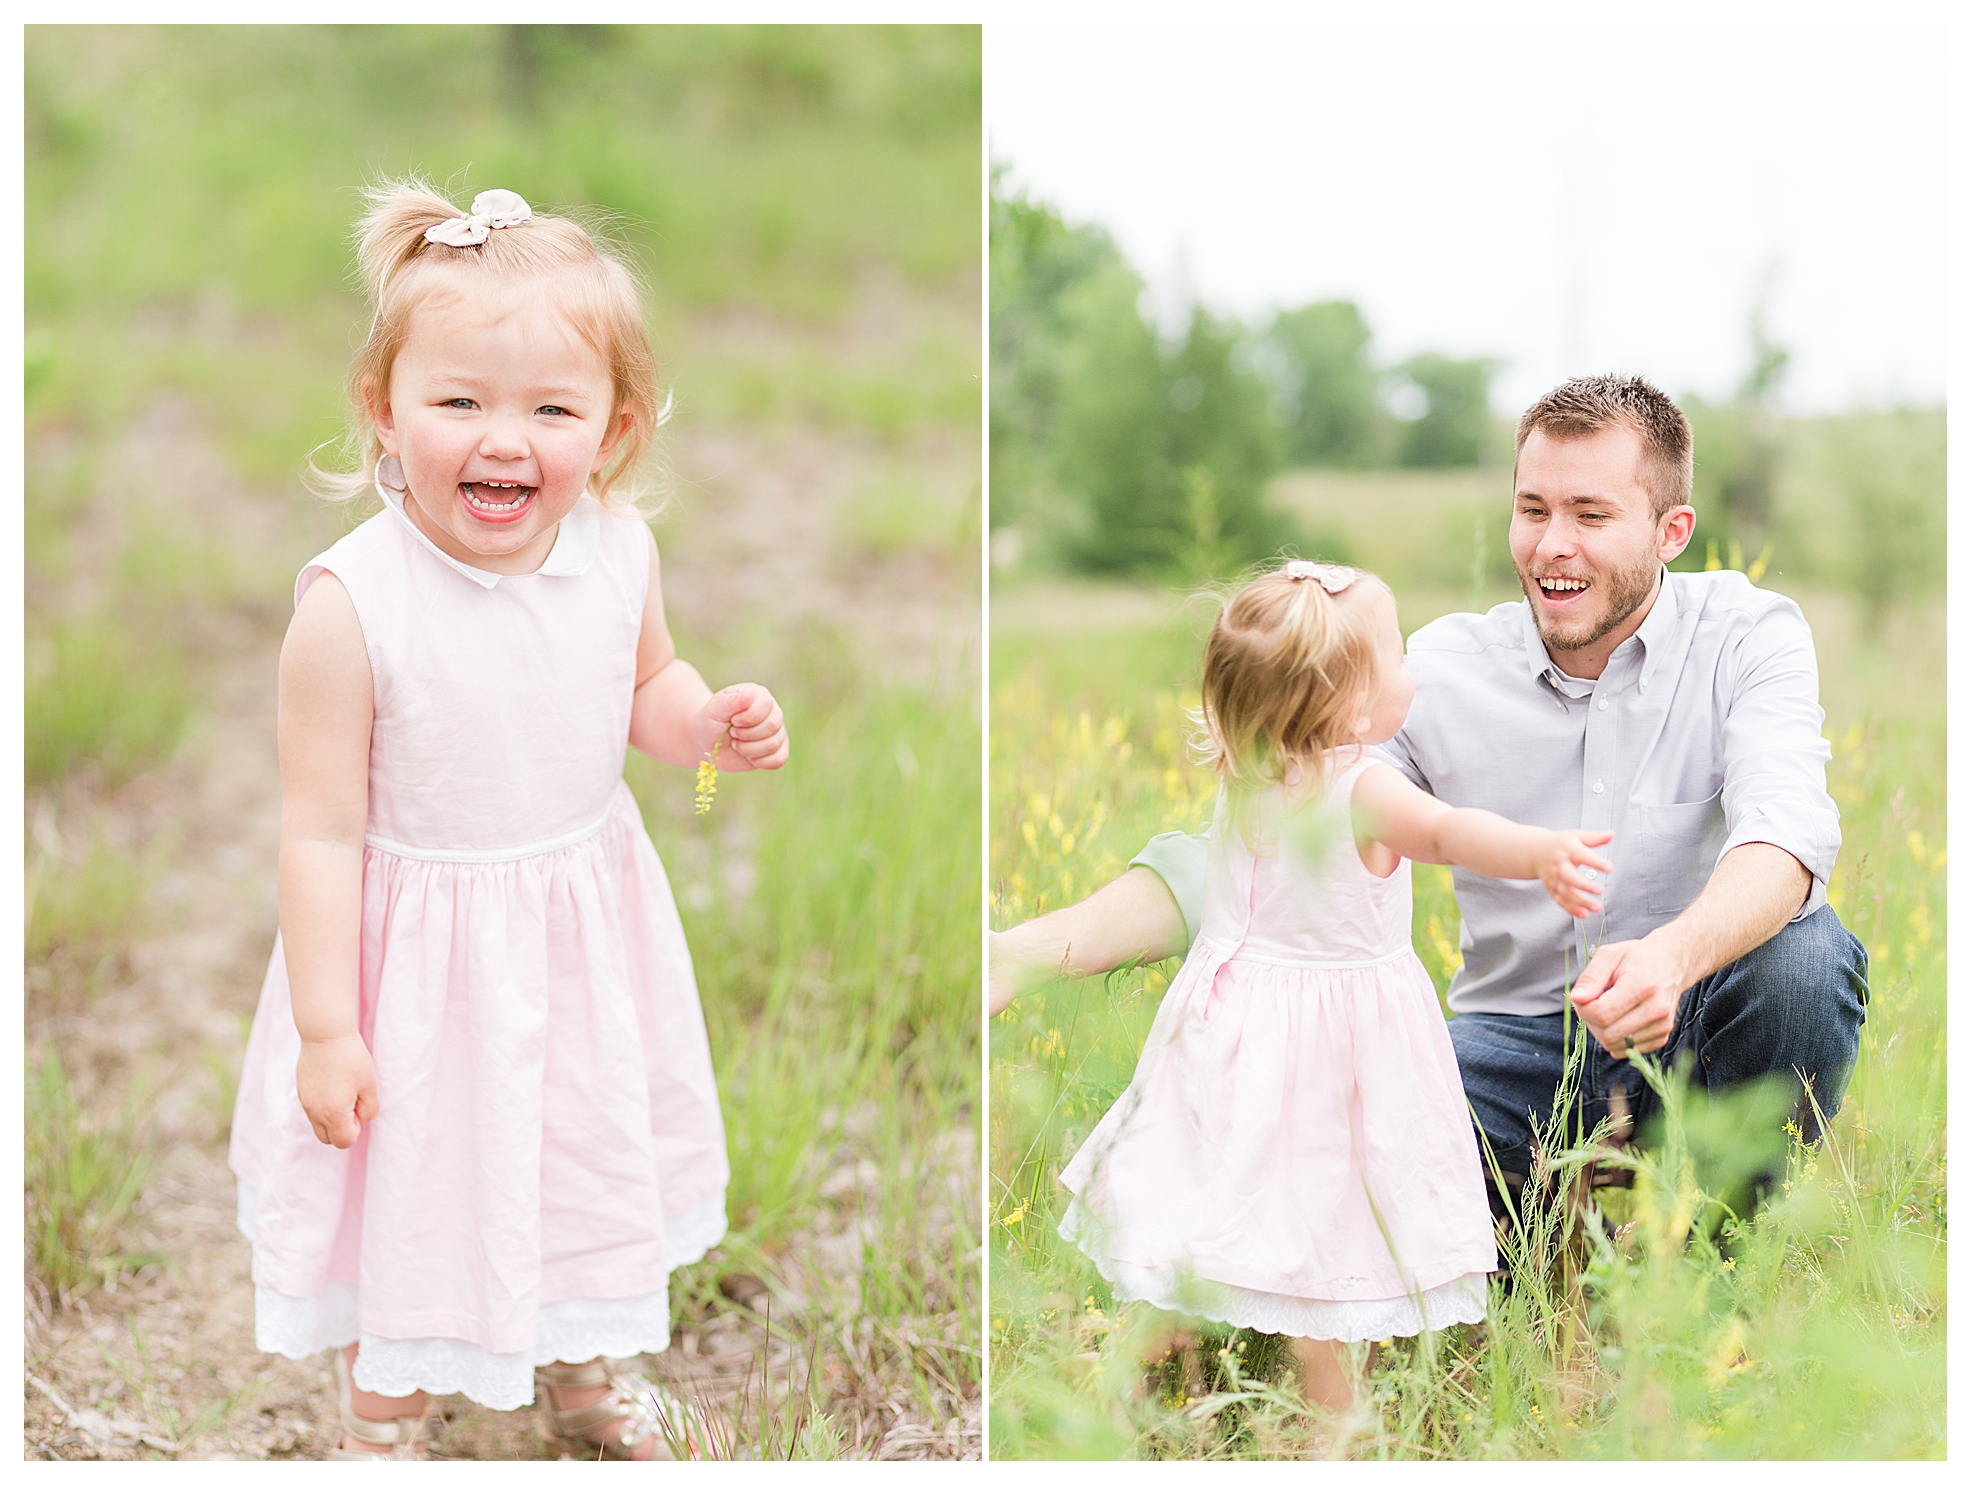 Goodness, dad photos melt my heart!  I love capturing all the different connections and relationships at a family session!